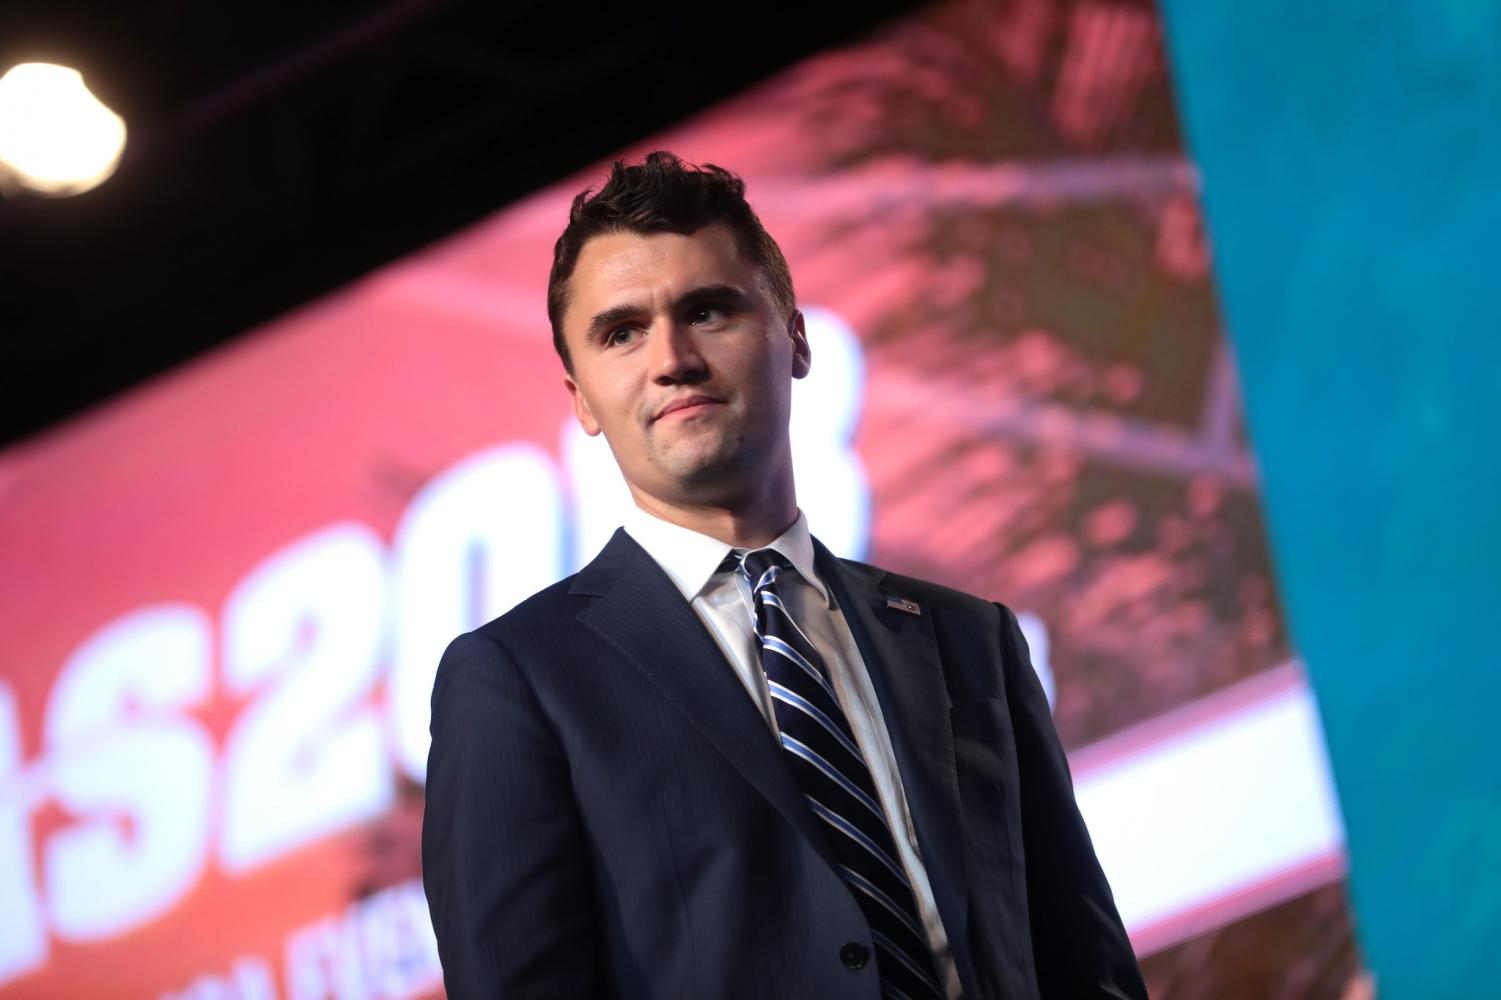 Charlie Kirk speaking with attendees at the 2018 Student Action Summit hosted by Turning Point USA at the Palm Beach County Convention Center in West Palm Beach, Florida. Photo courtesy of Gage Skidmore/Flickr